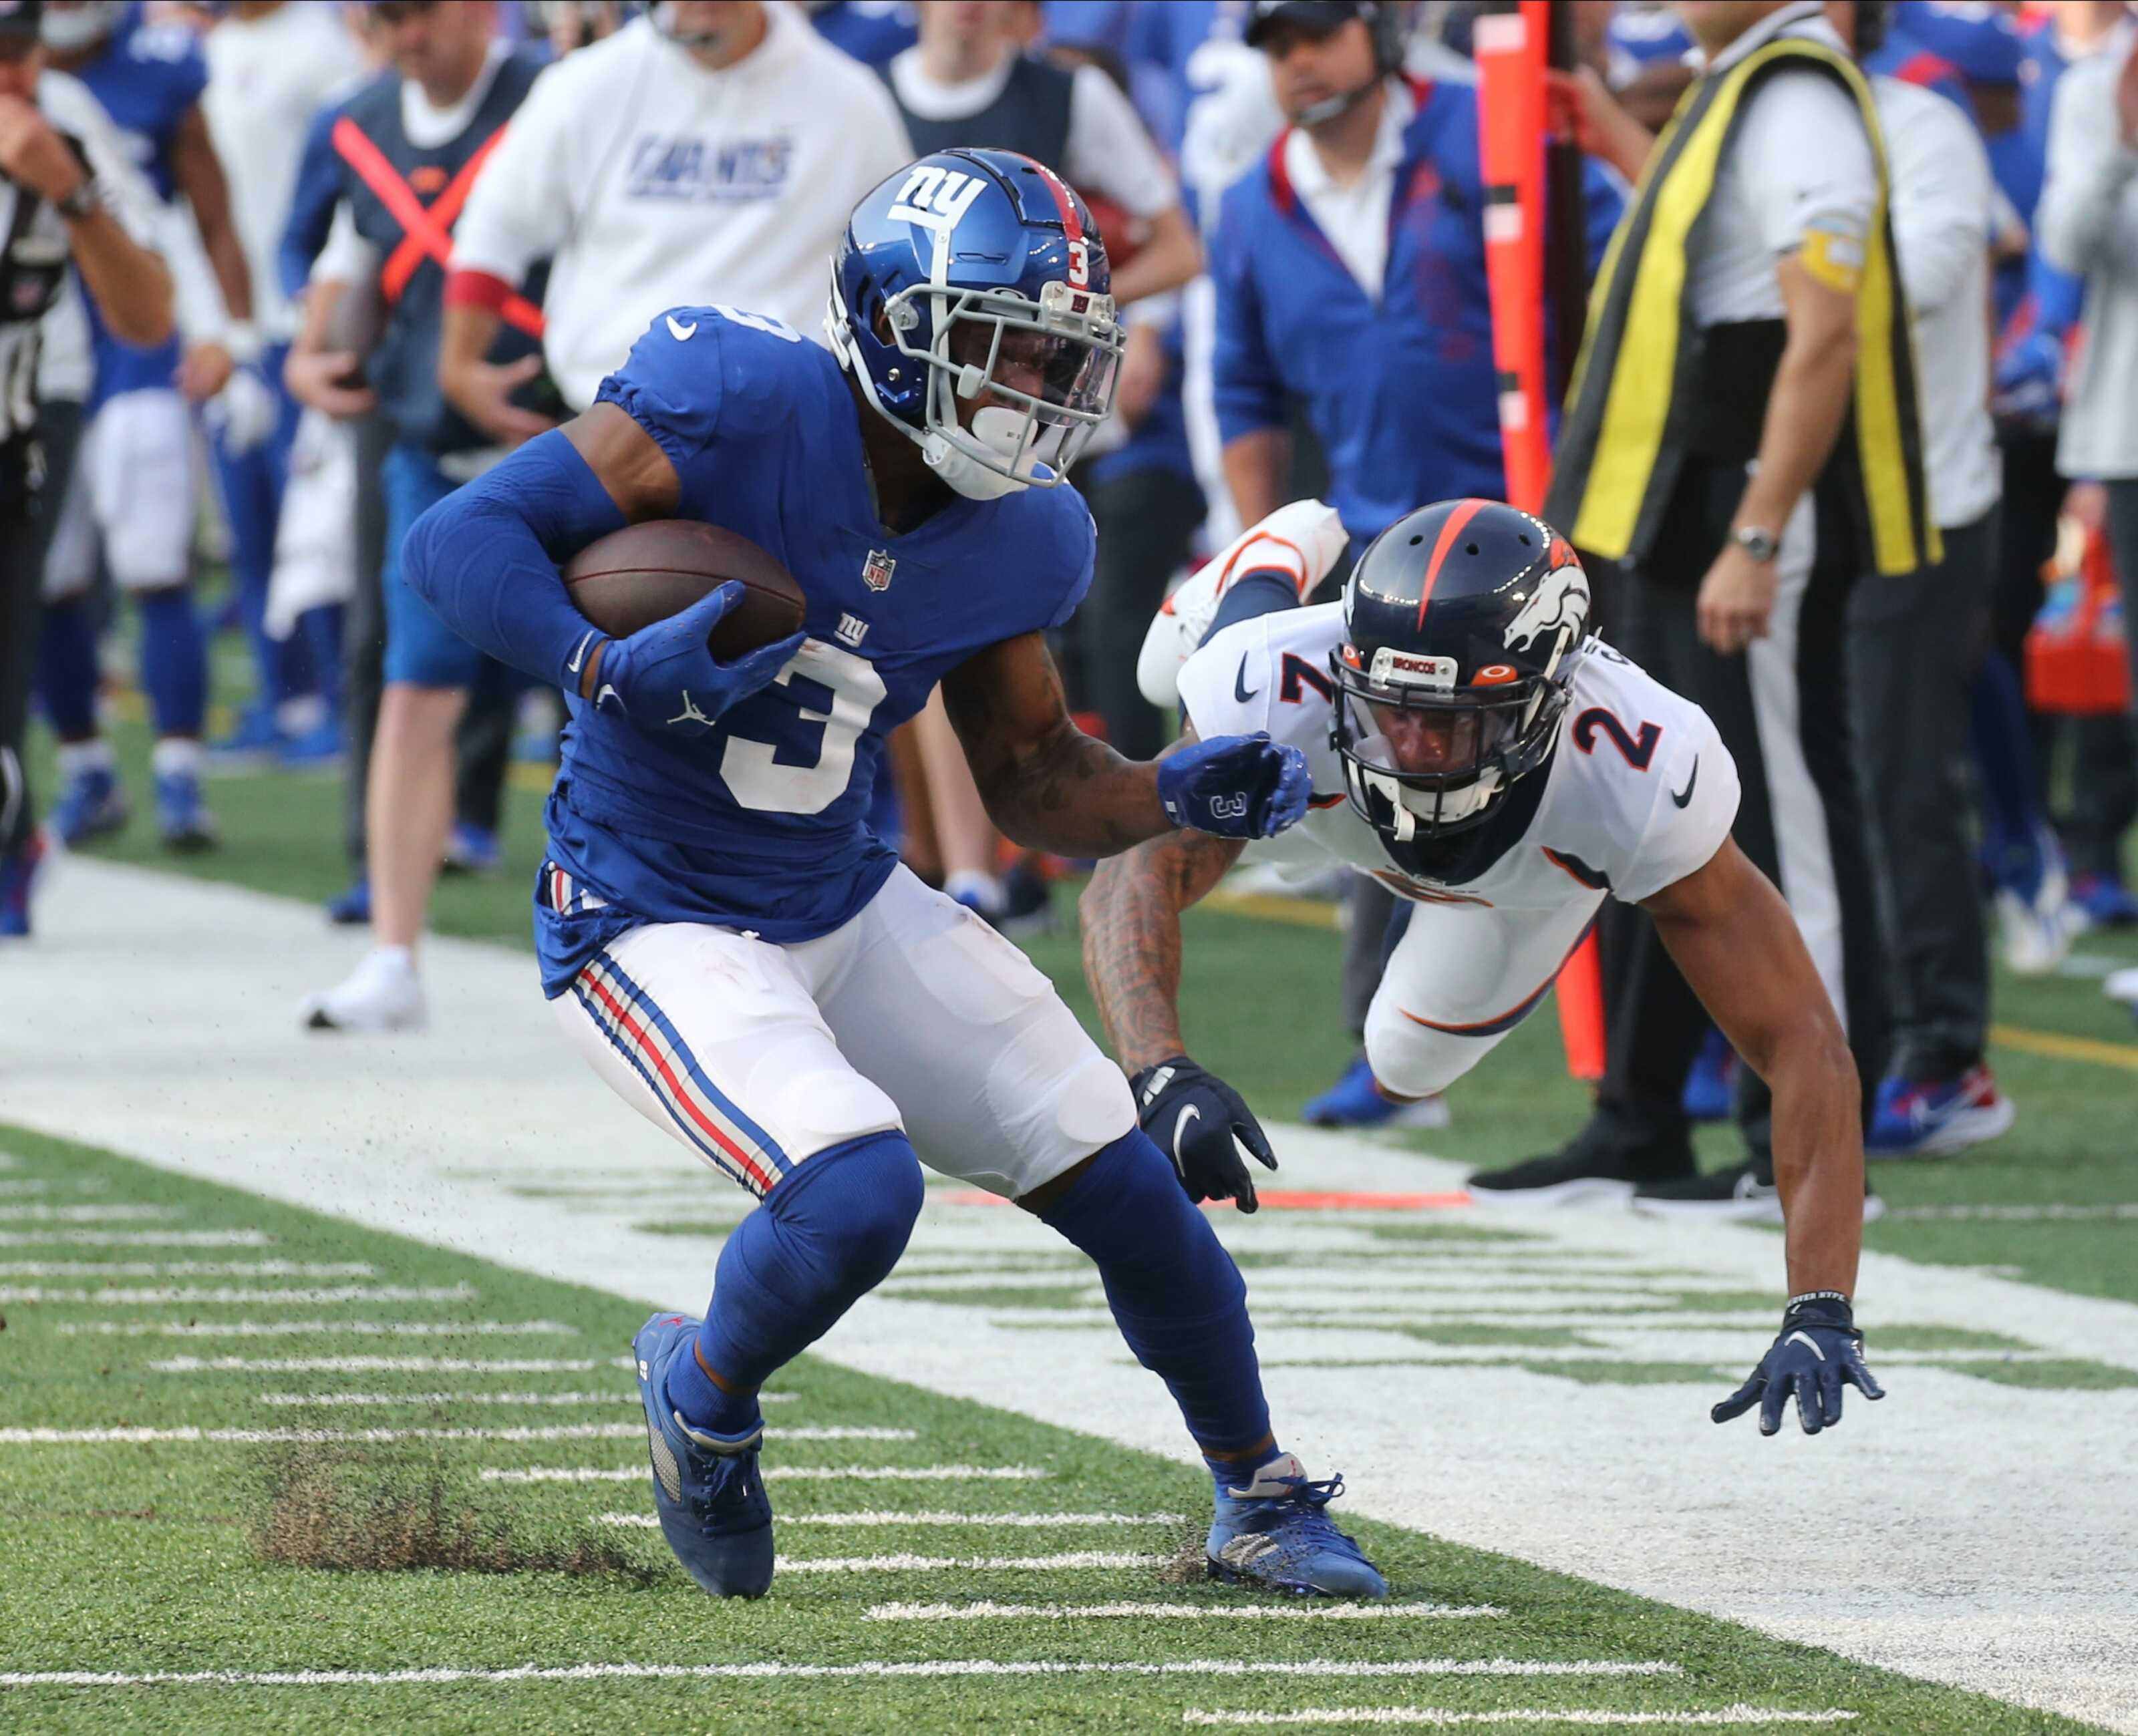 NY Giants studs and duds from loss to Broncos: Sterling Shepard alone can't carry offense